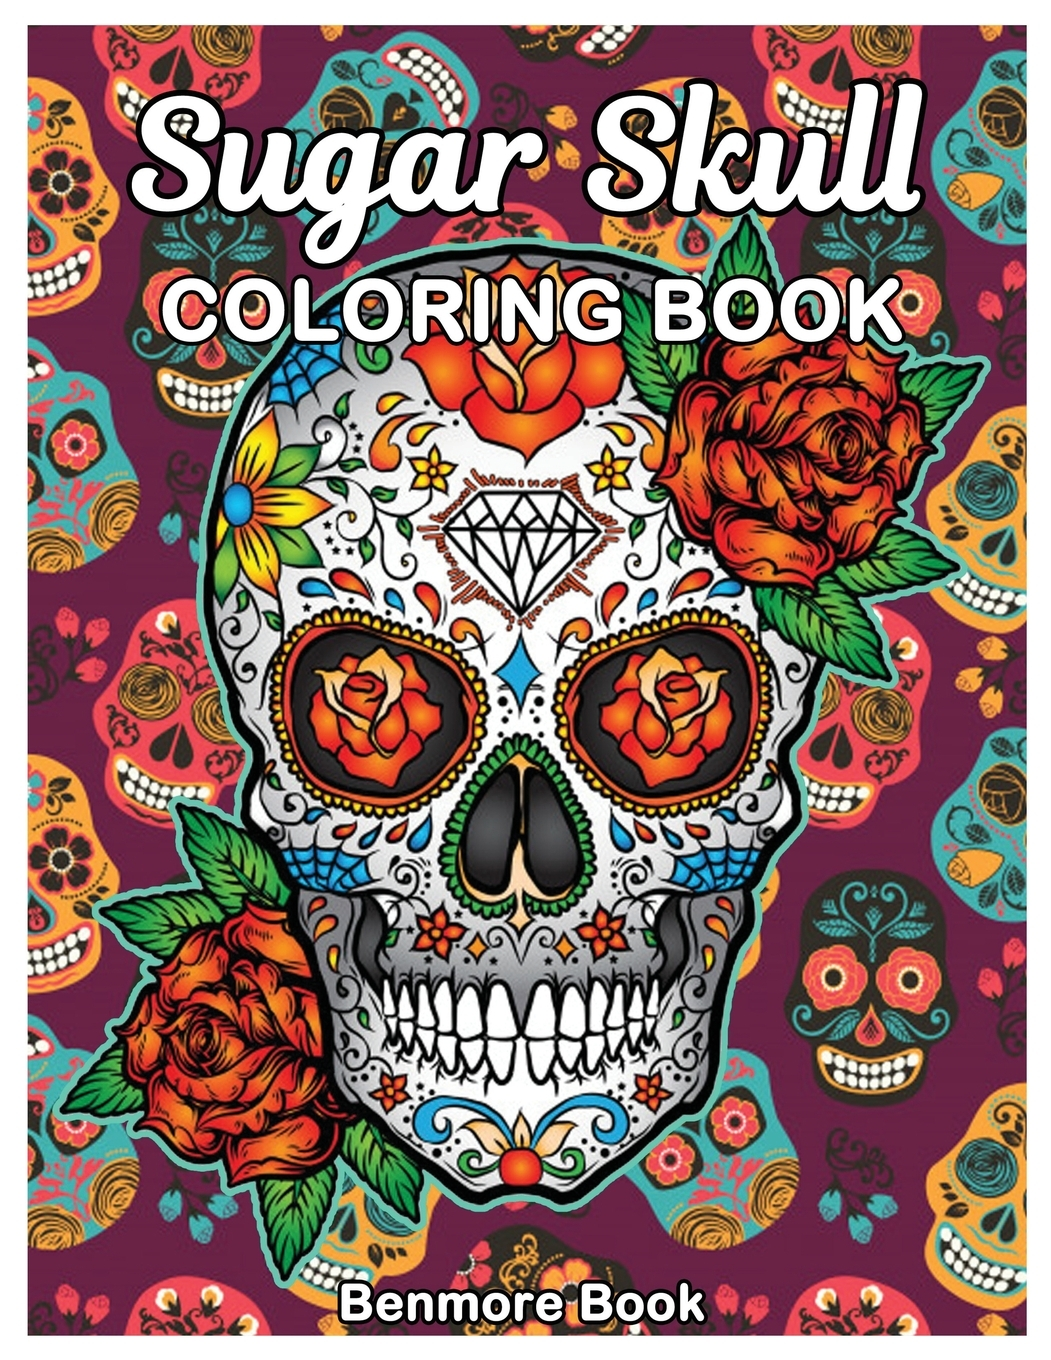 - Sugar Skull Coloring Book: Midnight Adult Coloring Book, Stress Management Coloring  Book For Adults With Fun Skull Designs, For Relaxation (Paperback) -  Walmart.com - Walmart.com